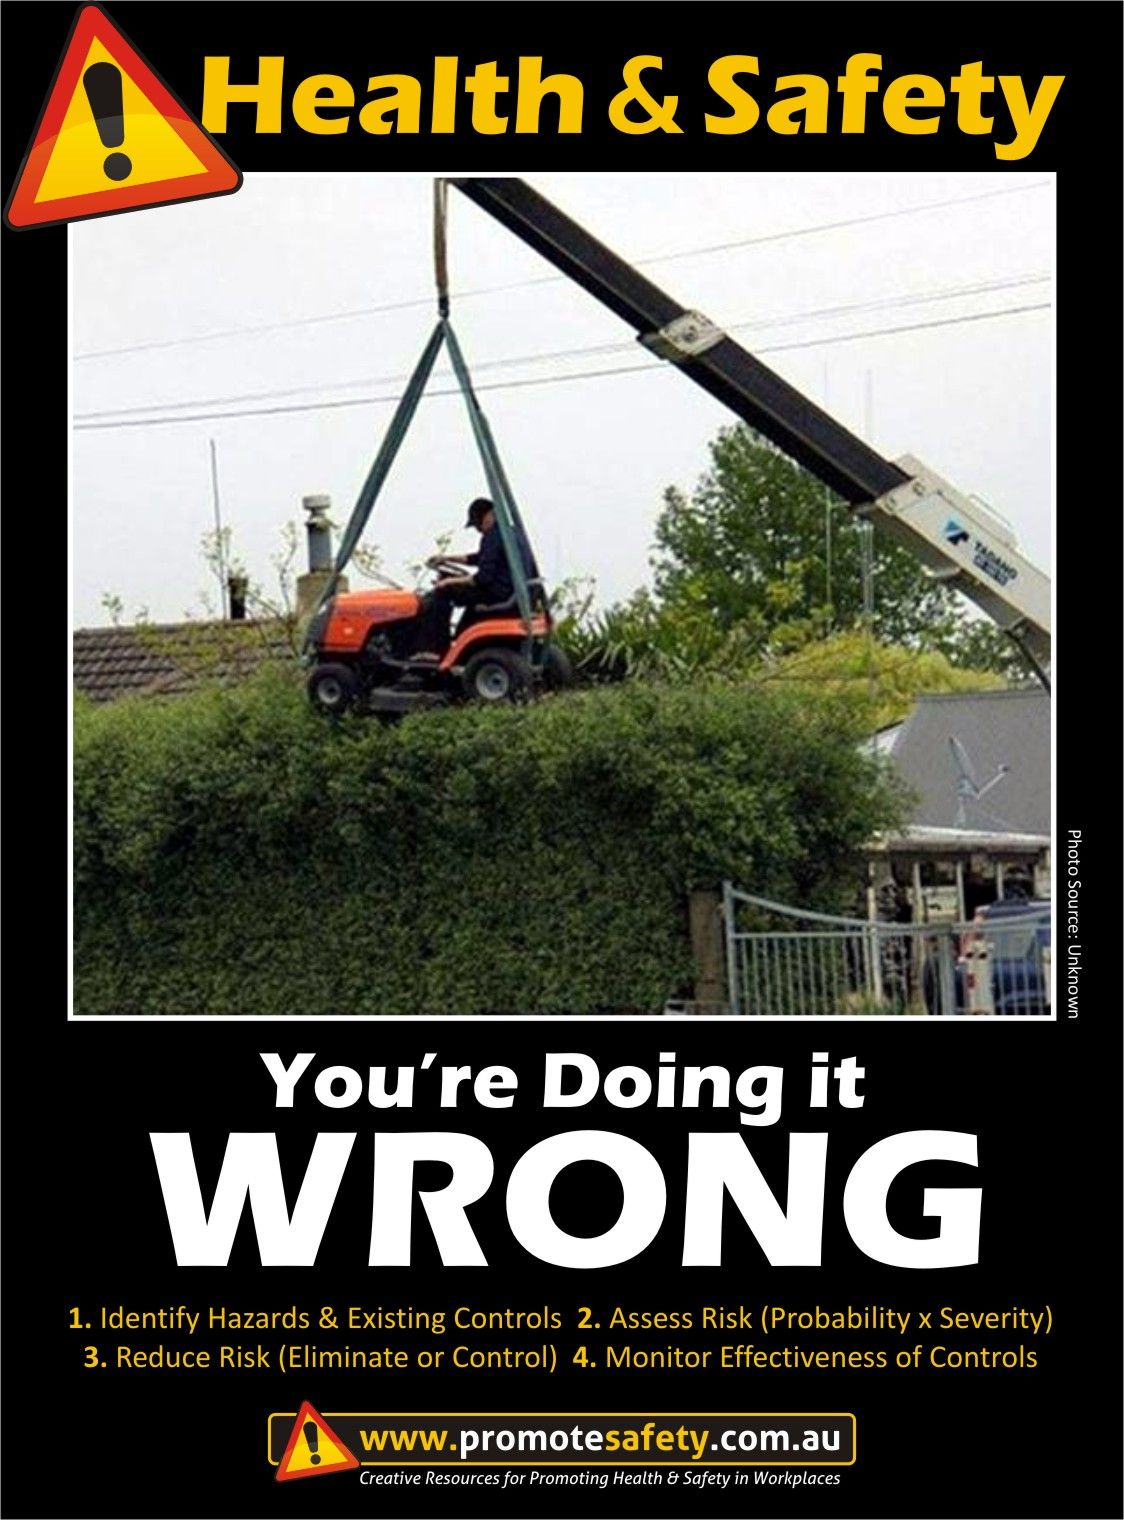 Health & Safety You're Doing it Wrong Work at Height